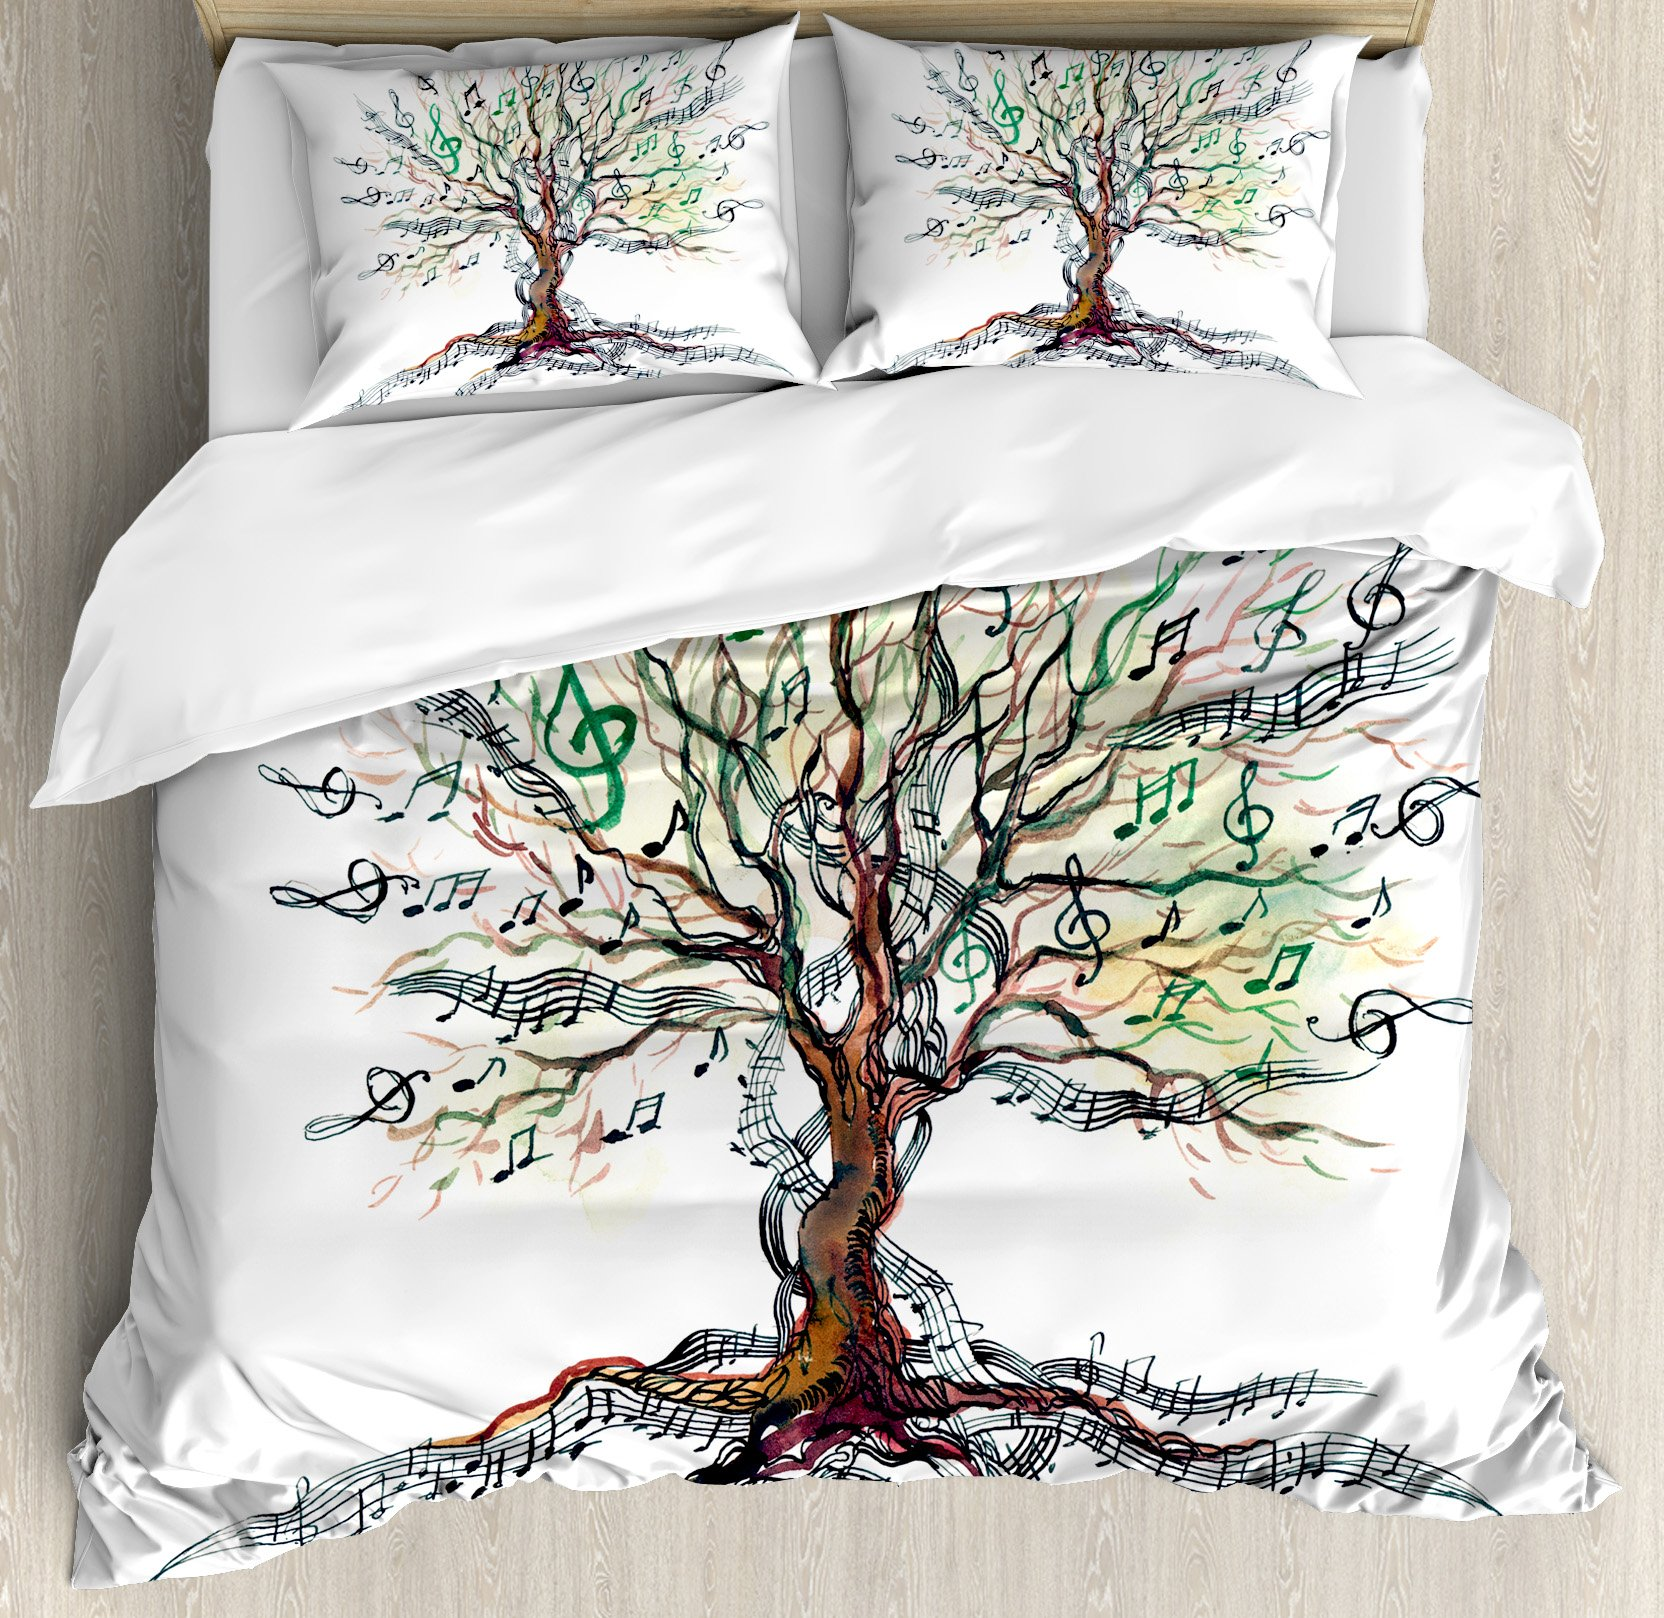 Music Decor Duvet Cover Set Queen Size by Ambesonne, Musical Tree Autumn Clef Trunk Swirl Nature Illustration Leaves Creative Design, Decorative 3 Piece Bedding Set with 2 Pillow Shams by Ambesonne